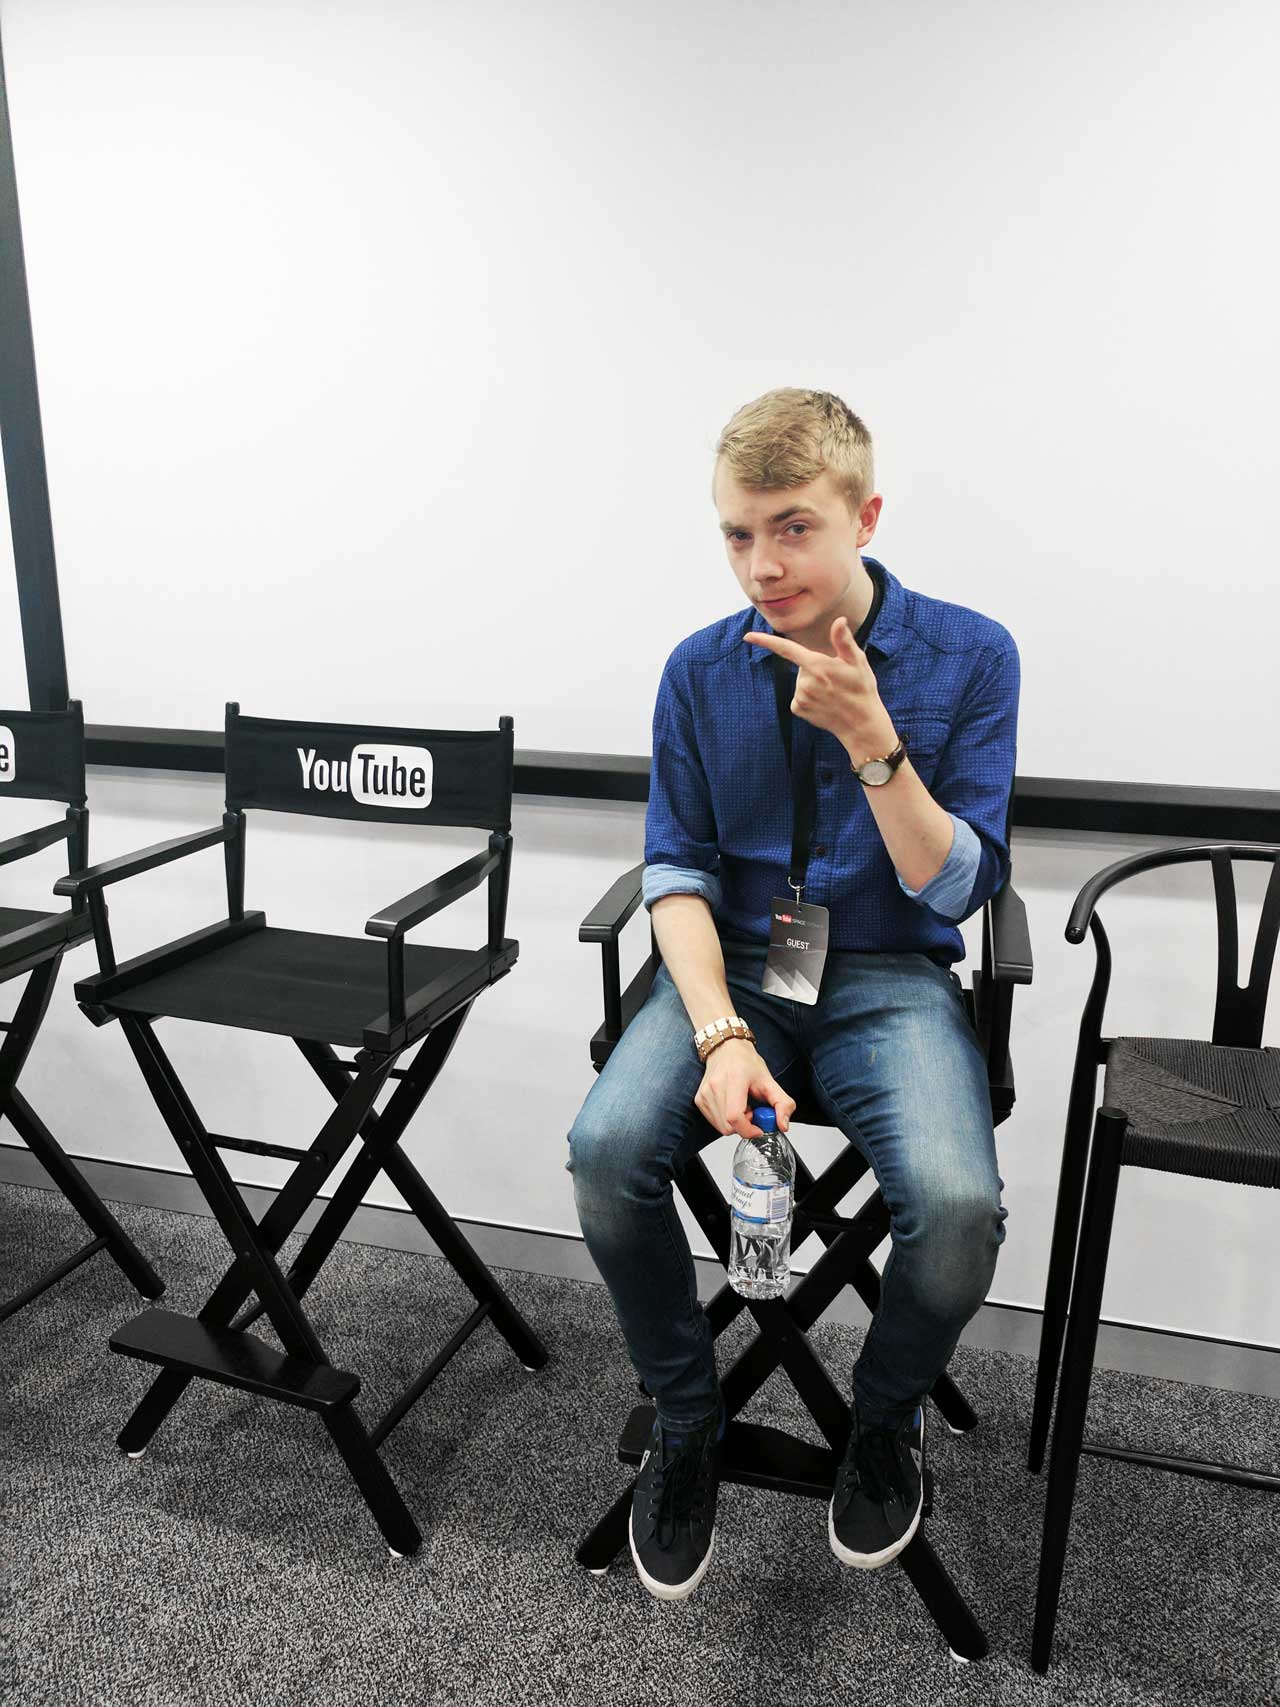 Mattias at YouTube Space in Sydney